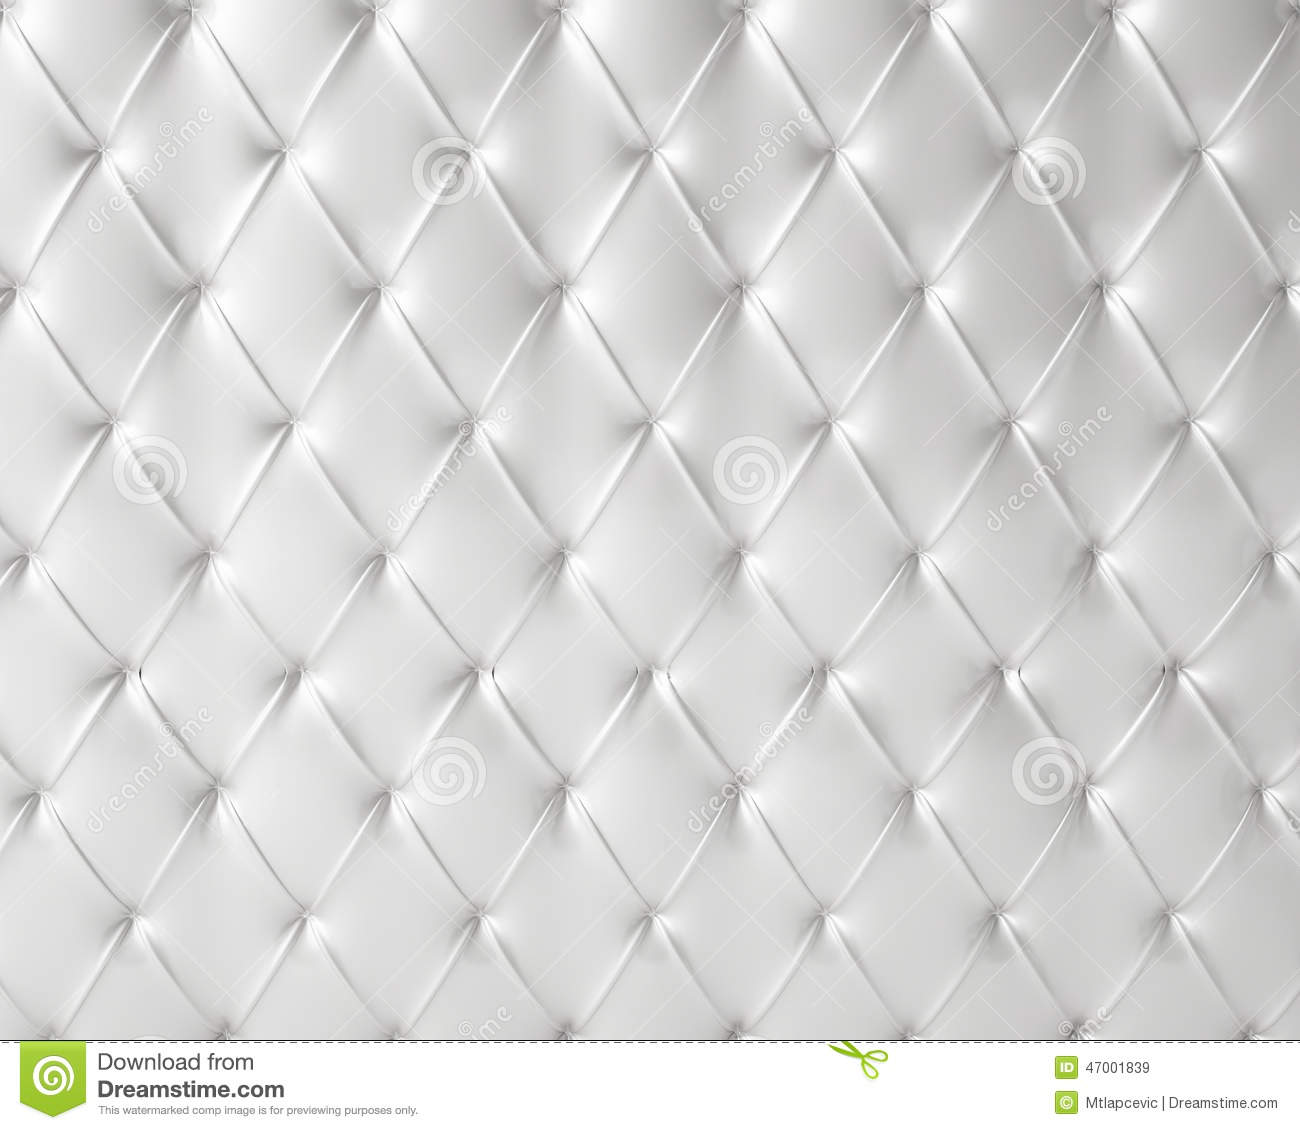 White Silky Luxury Buttoned Pattern Stock Illustration  : white silky luxury buttoned pattern template design 47001839 from dreamstime.com size 1300 x 1130 jpeg 89kB